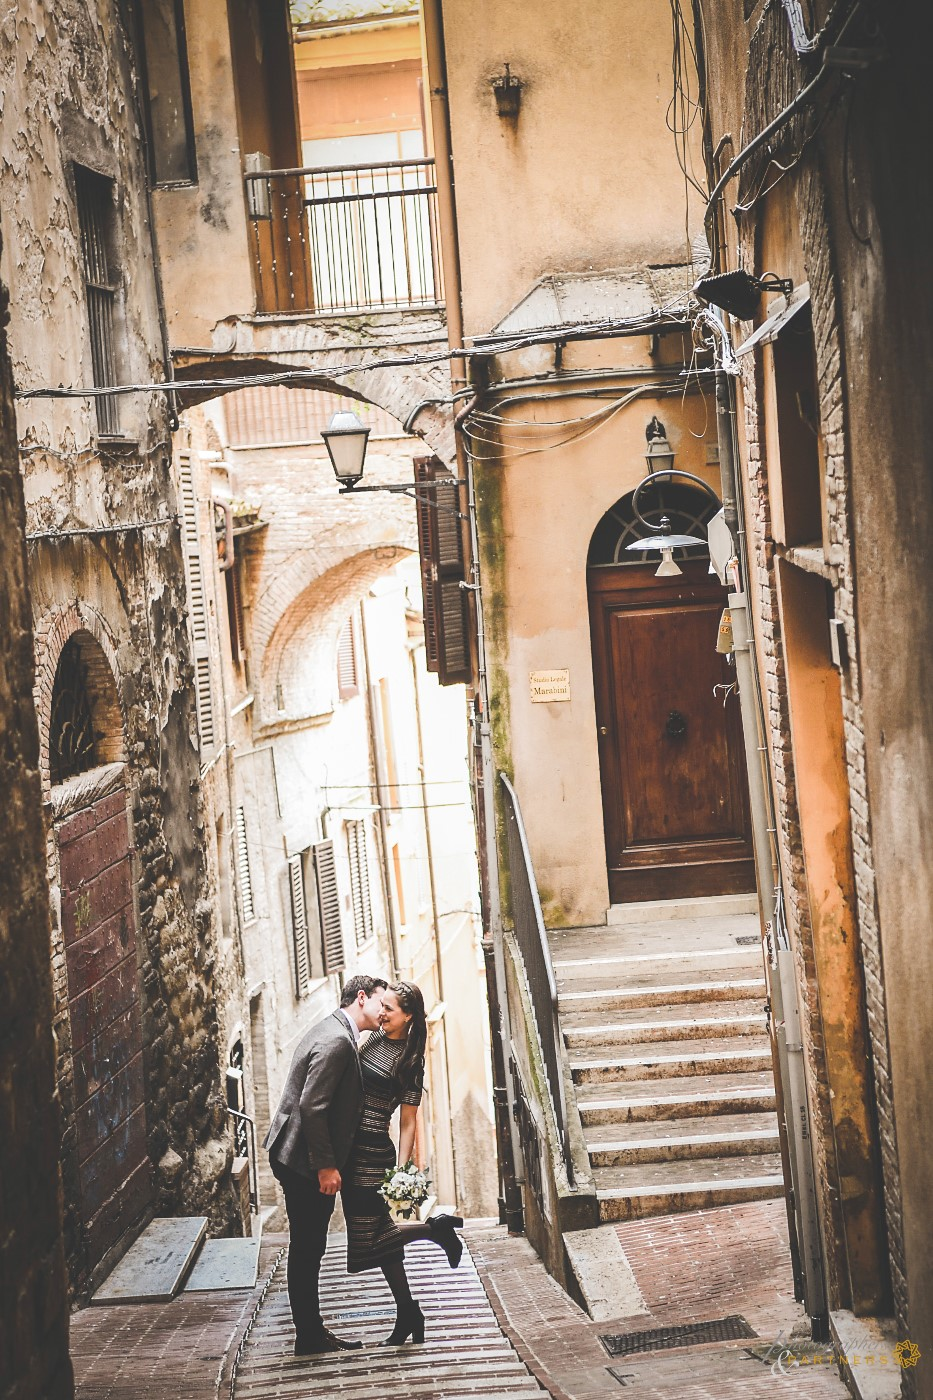 A photo in the alleys of Perugia.